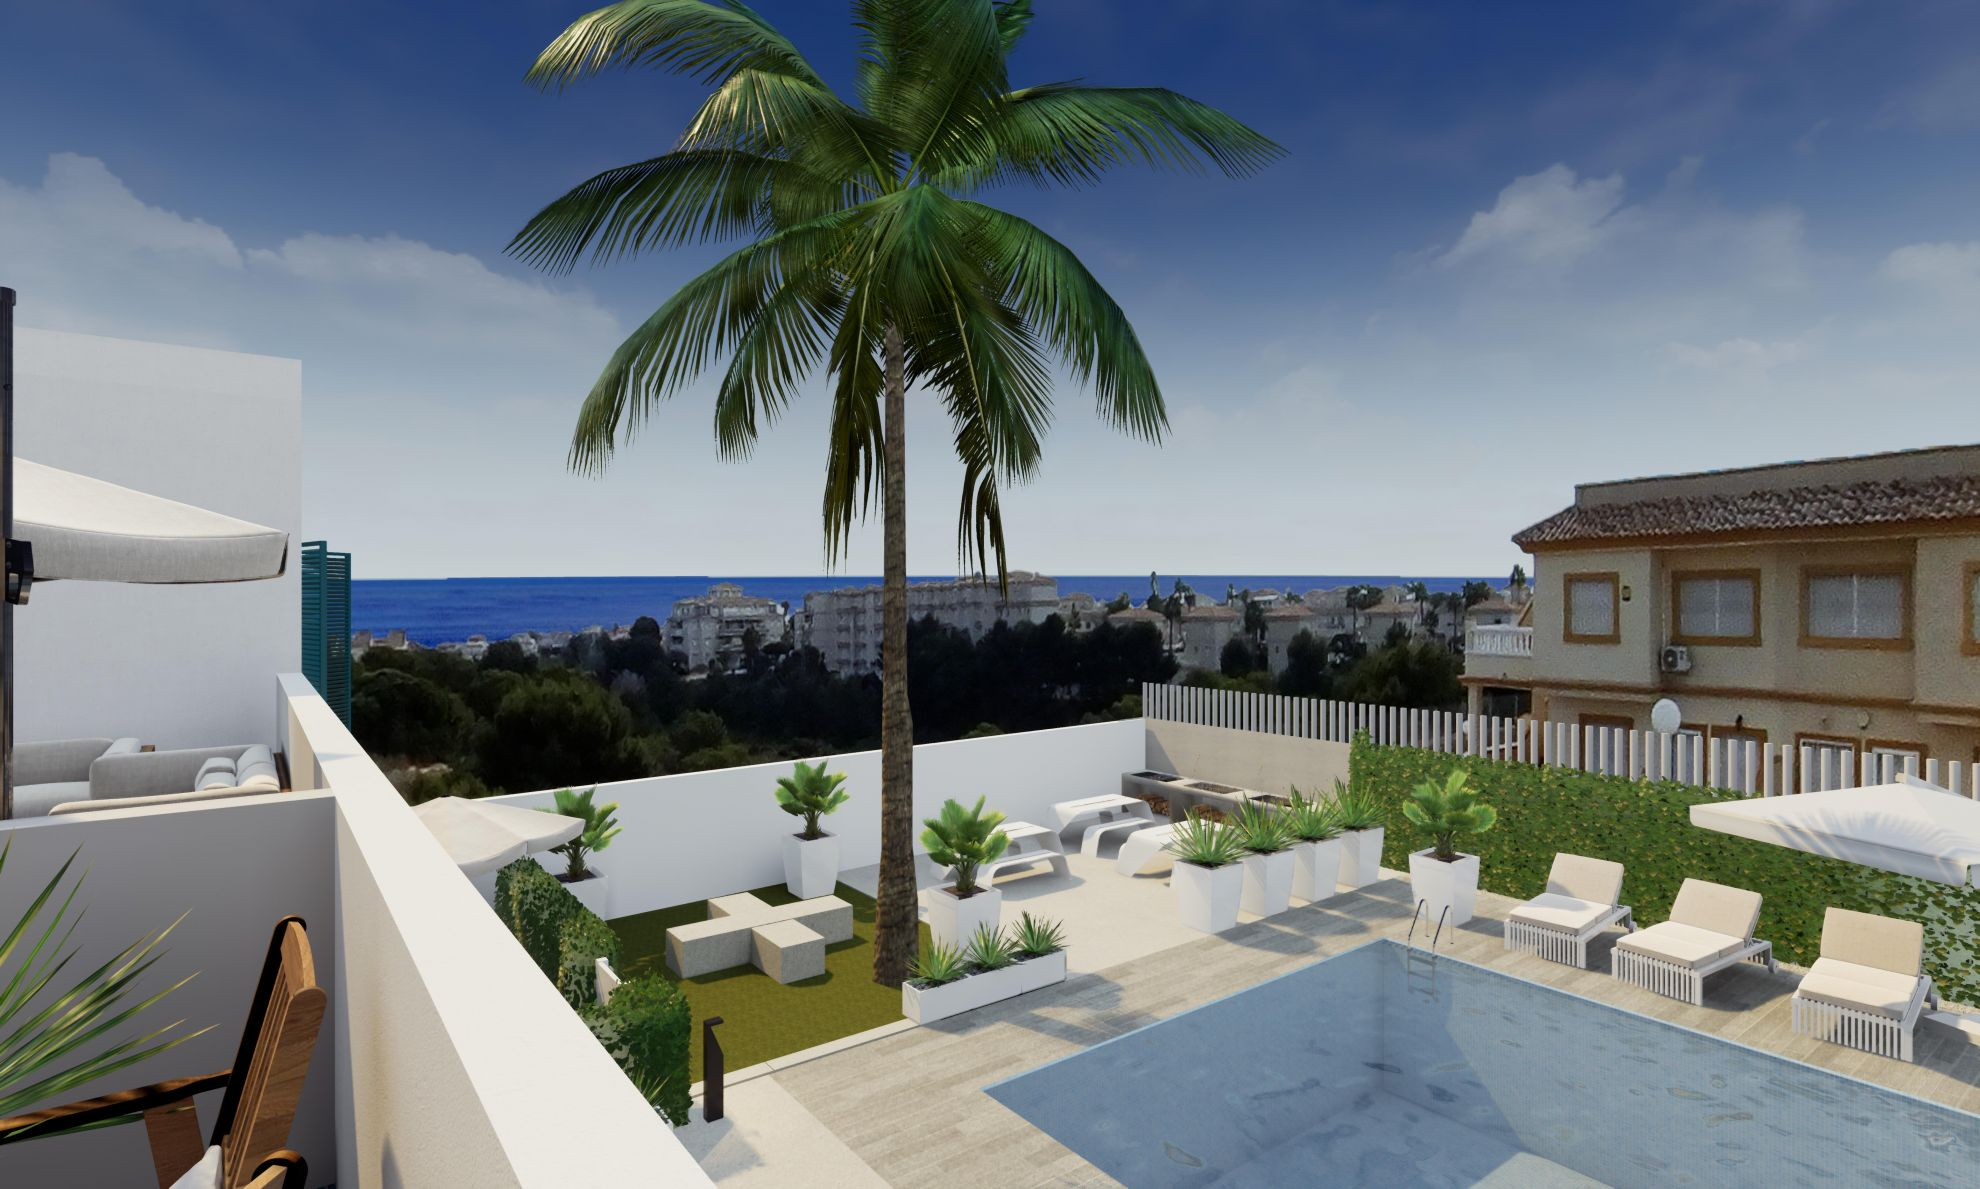 Apartments in Playa Flamenca 4